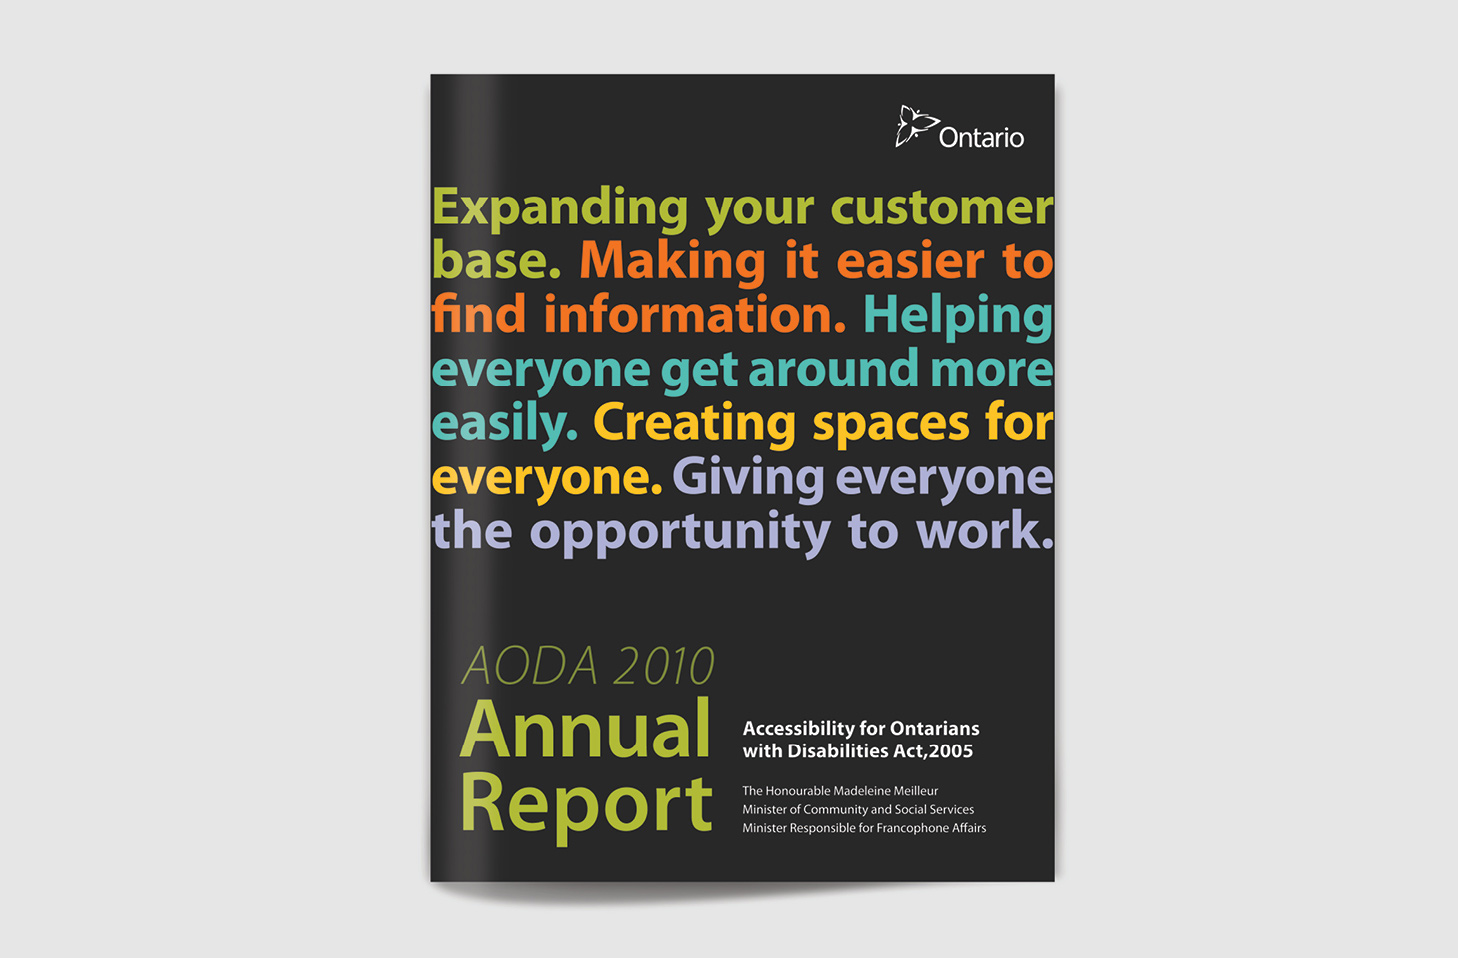 Cover of 2010 Annual Report.